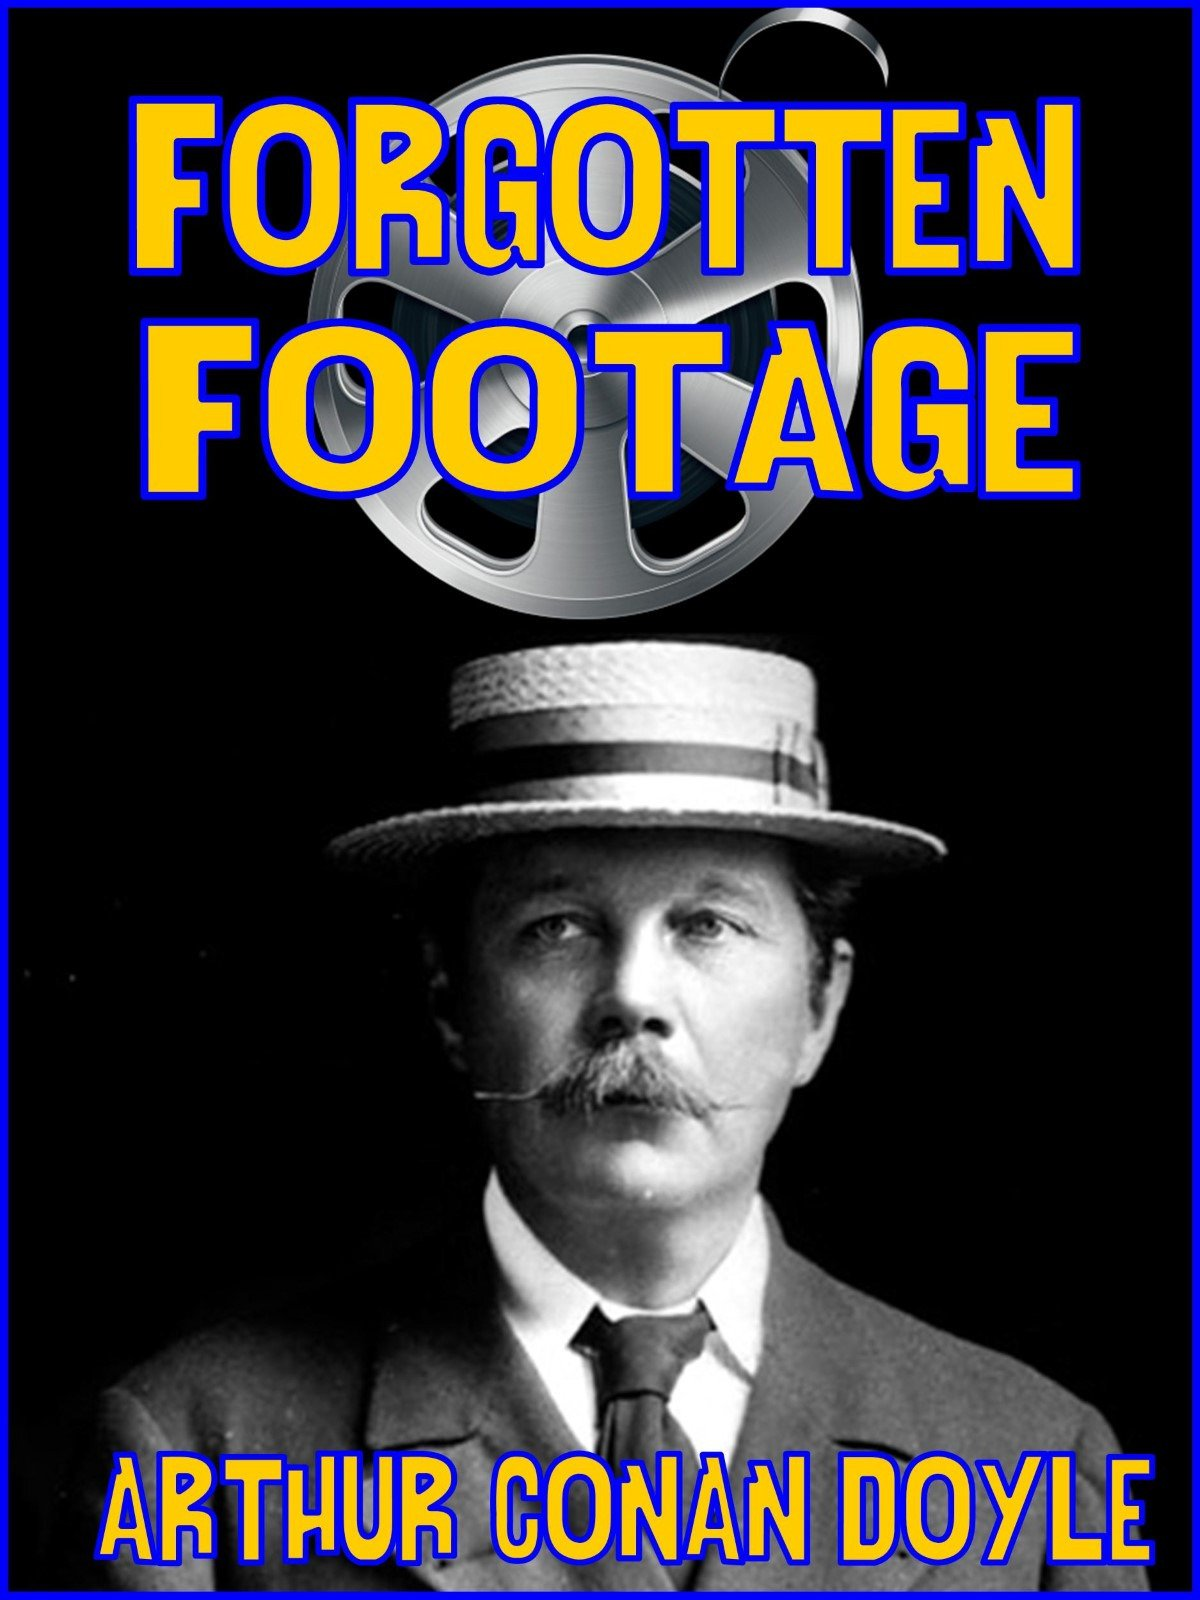 Forgotten Footage: Arthur Conan Doyle on Amazon Prime Video UK